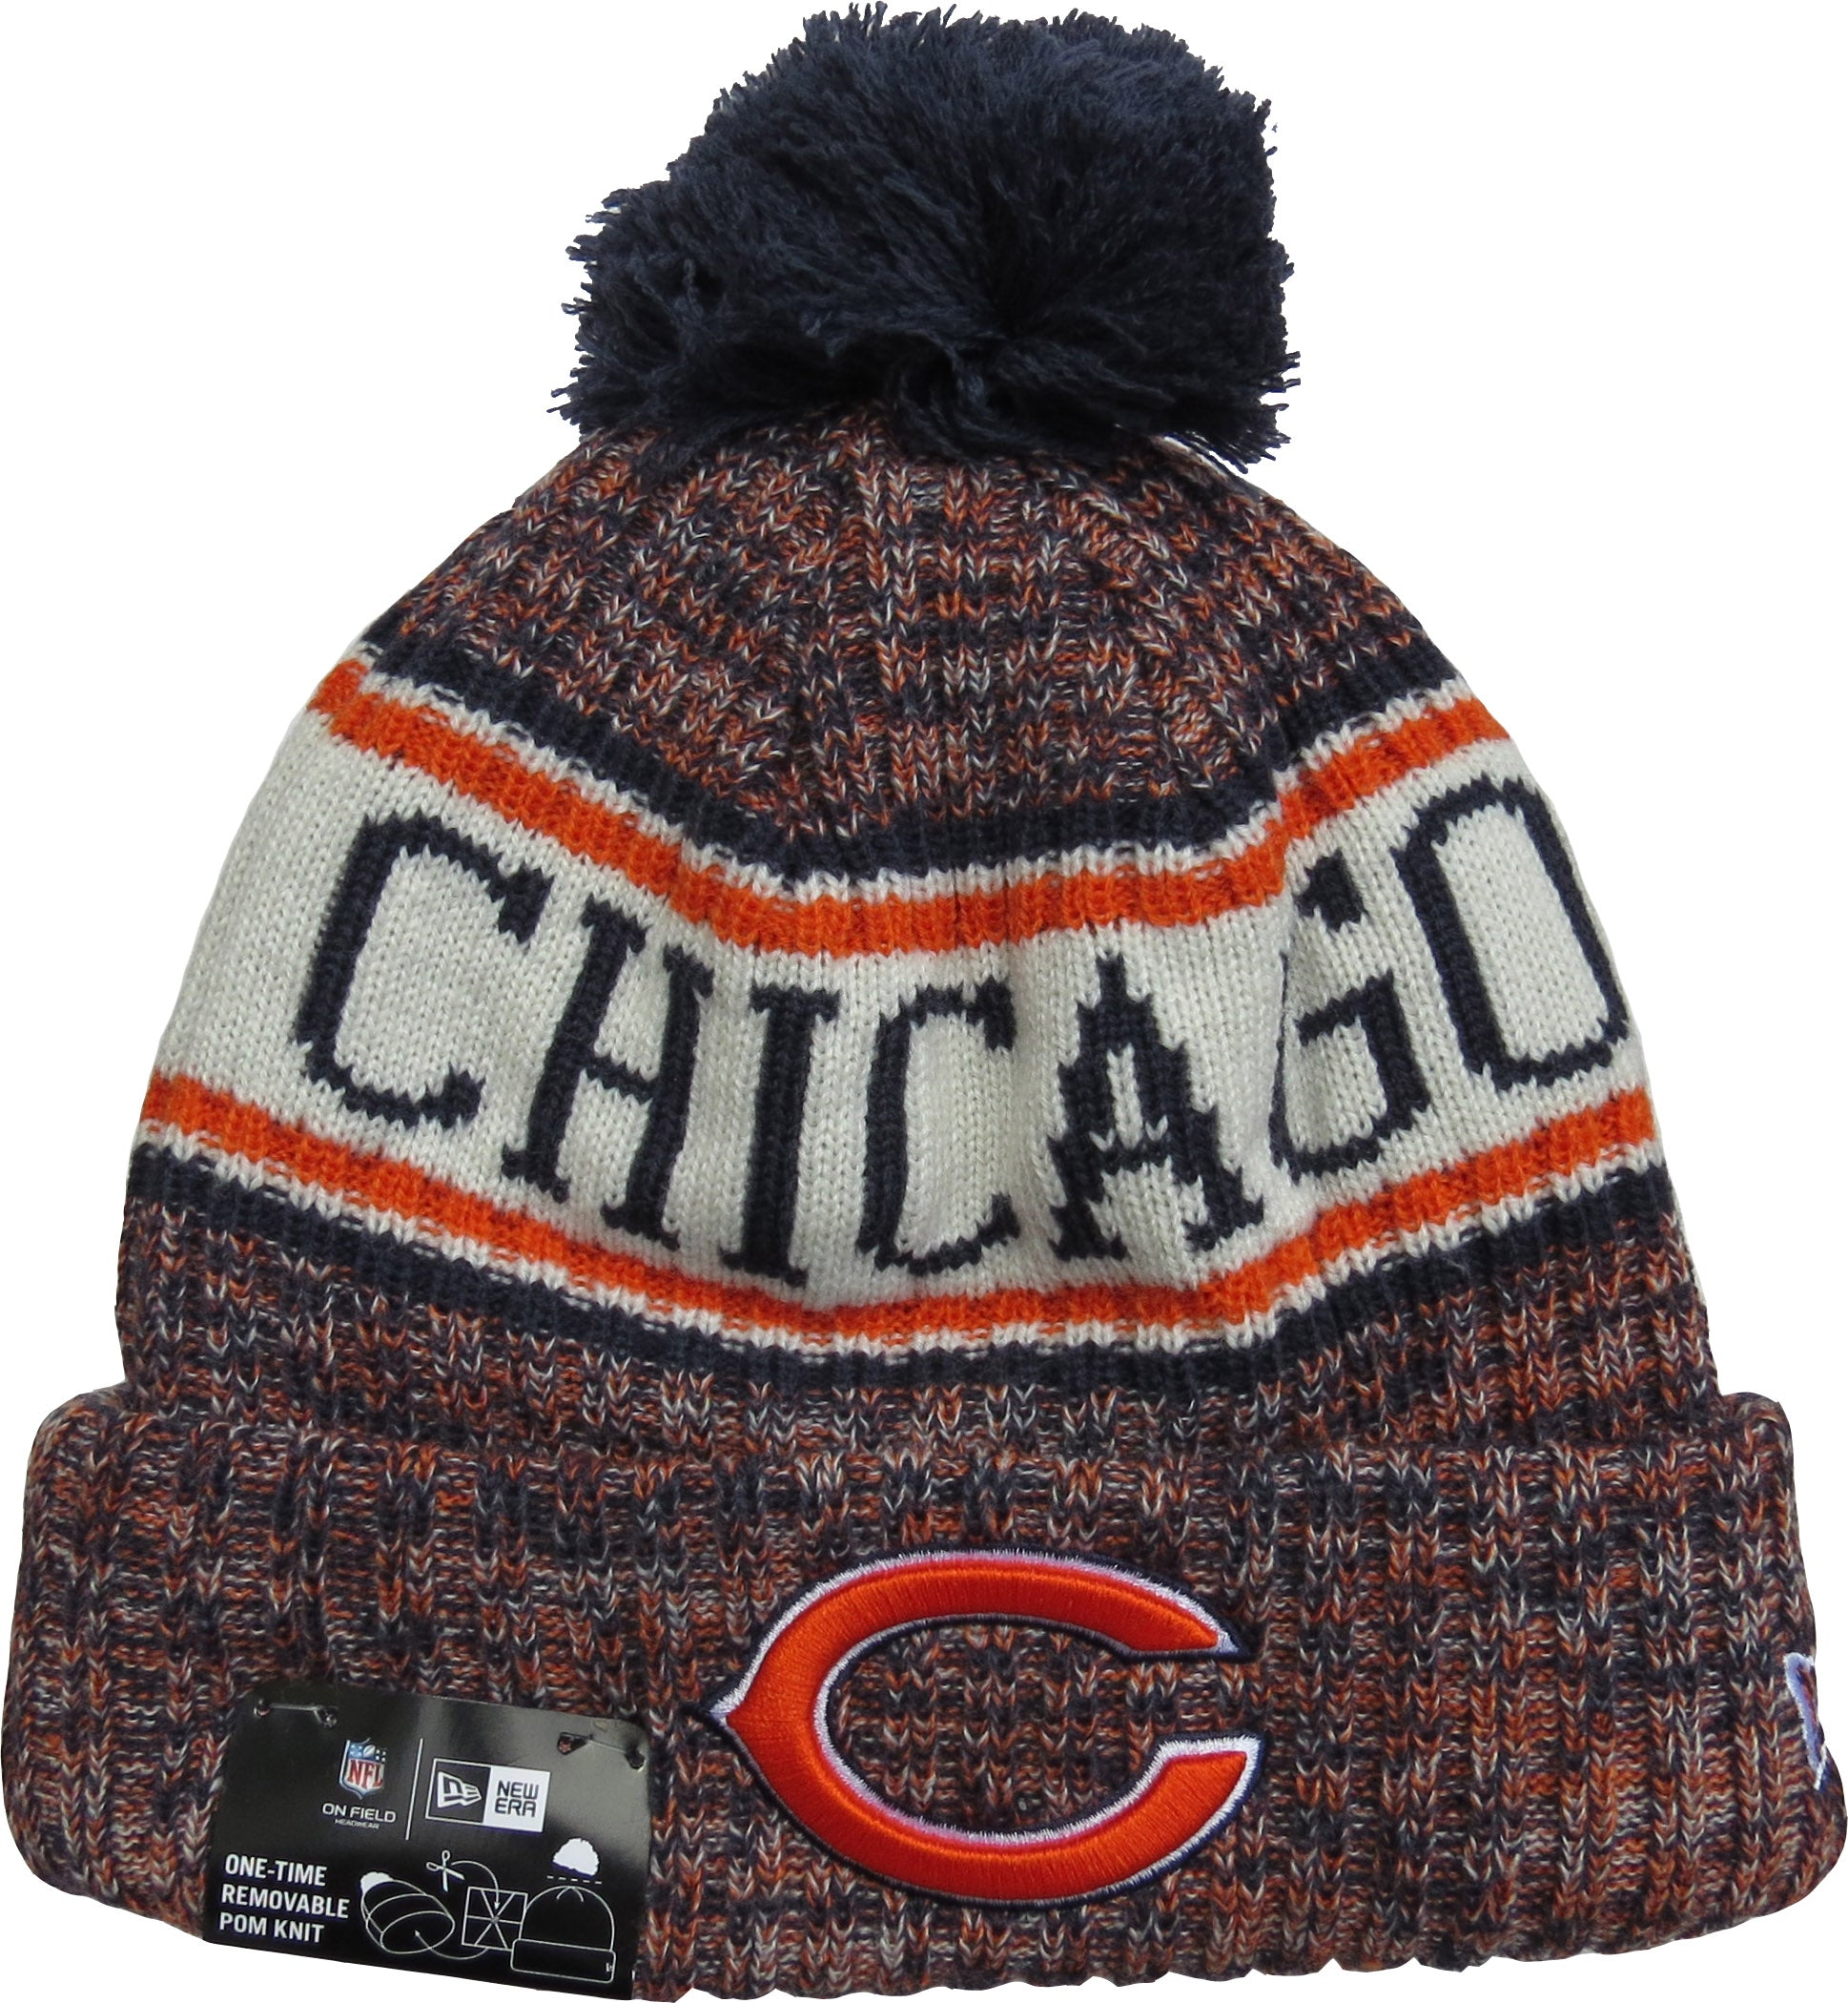 a7e2dcb482d Chicago Bears New Era NFL On Field 2018 Sport Knit Bobble Hat -  pumpheadgear